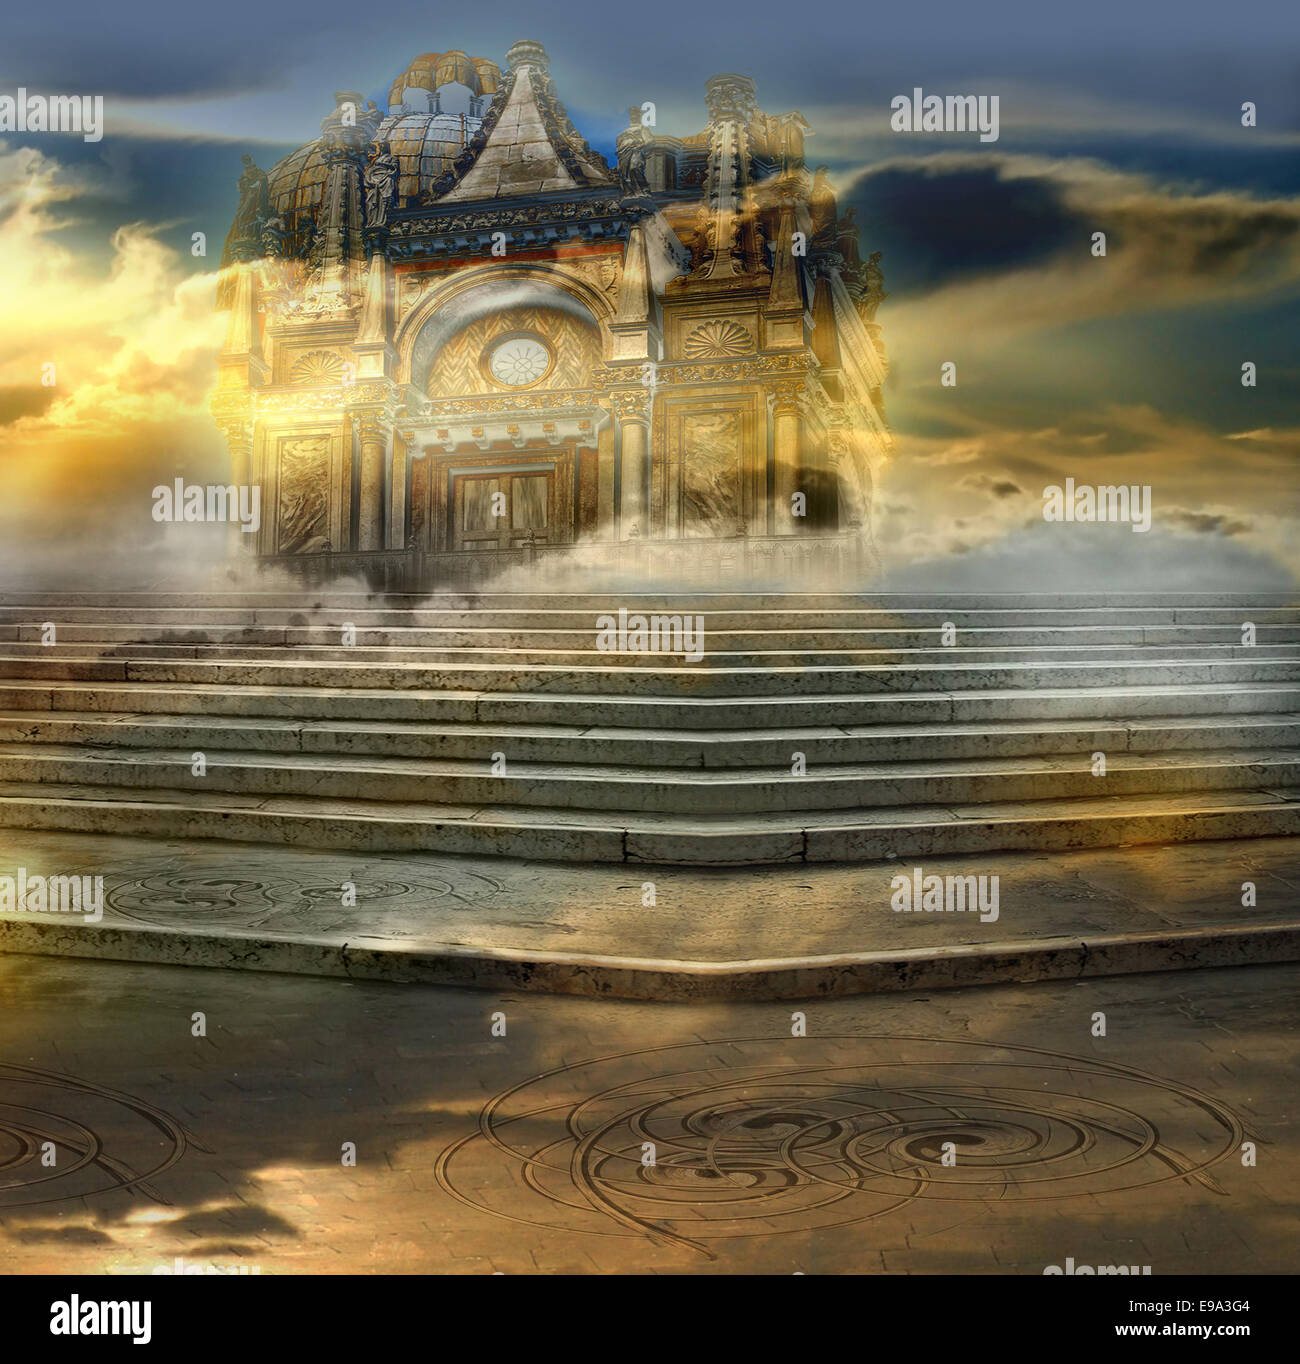 The celestial palace - Stock Image